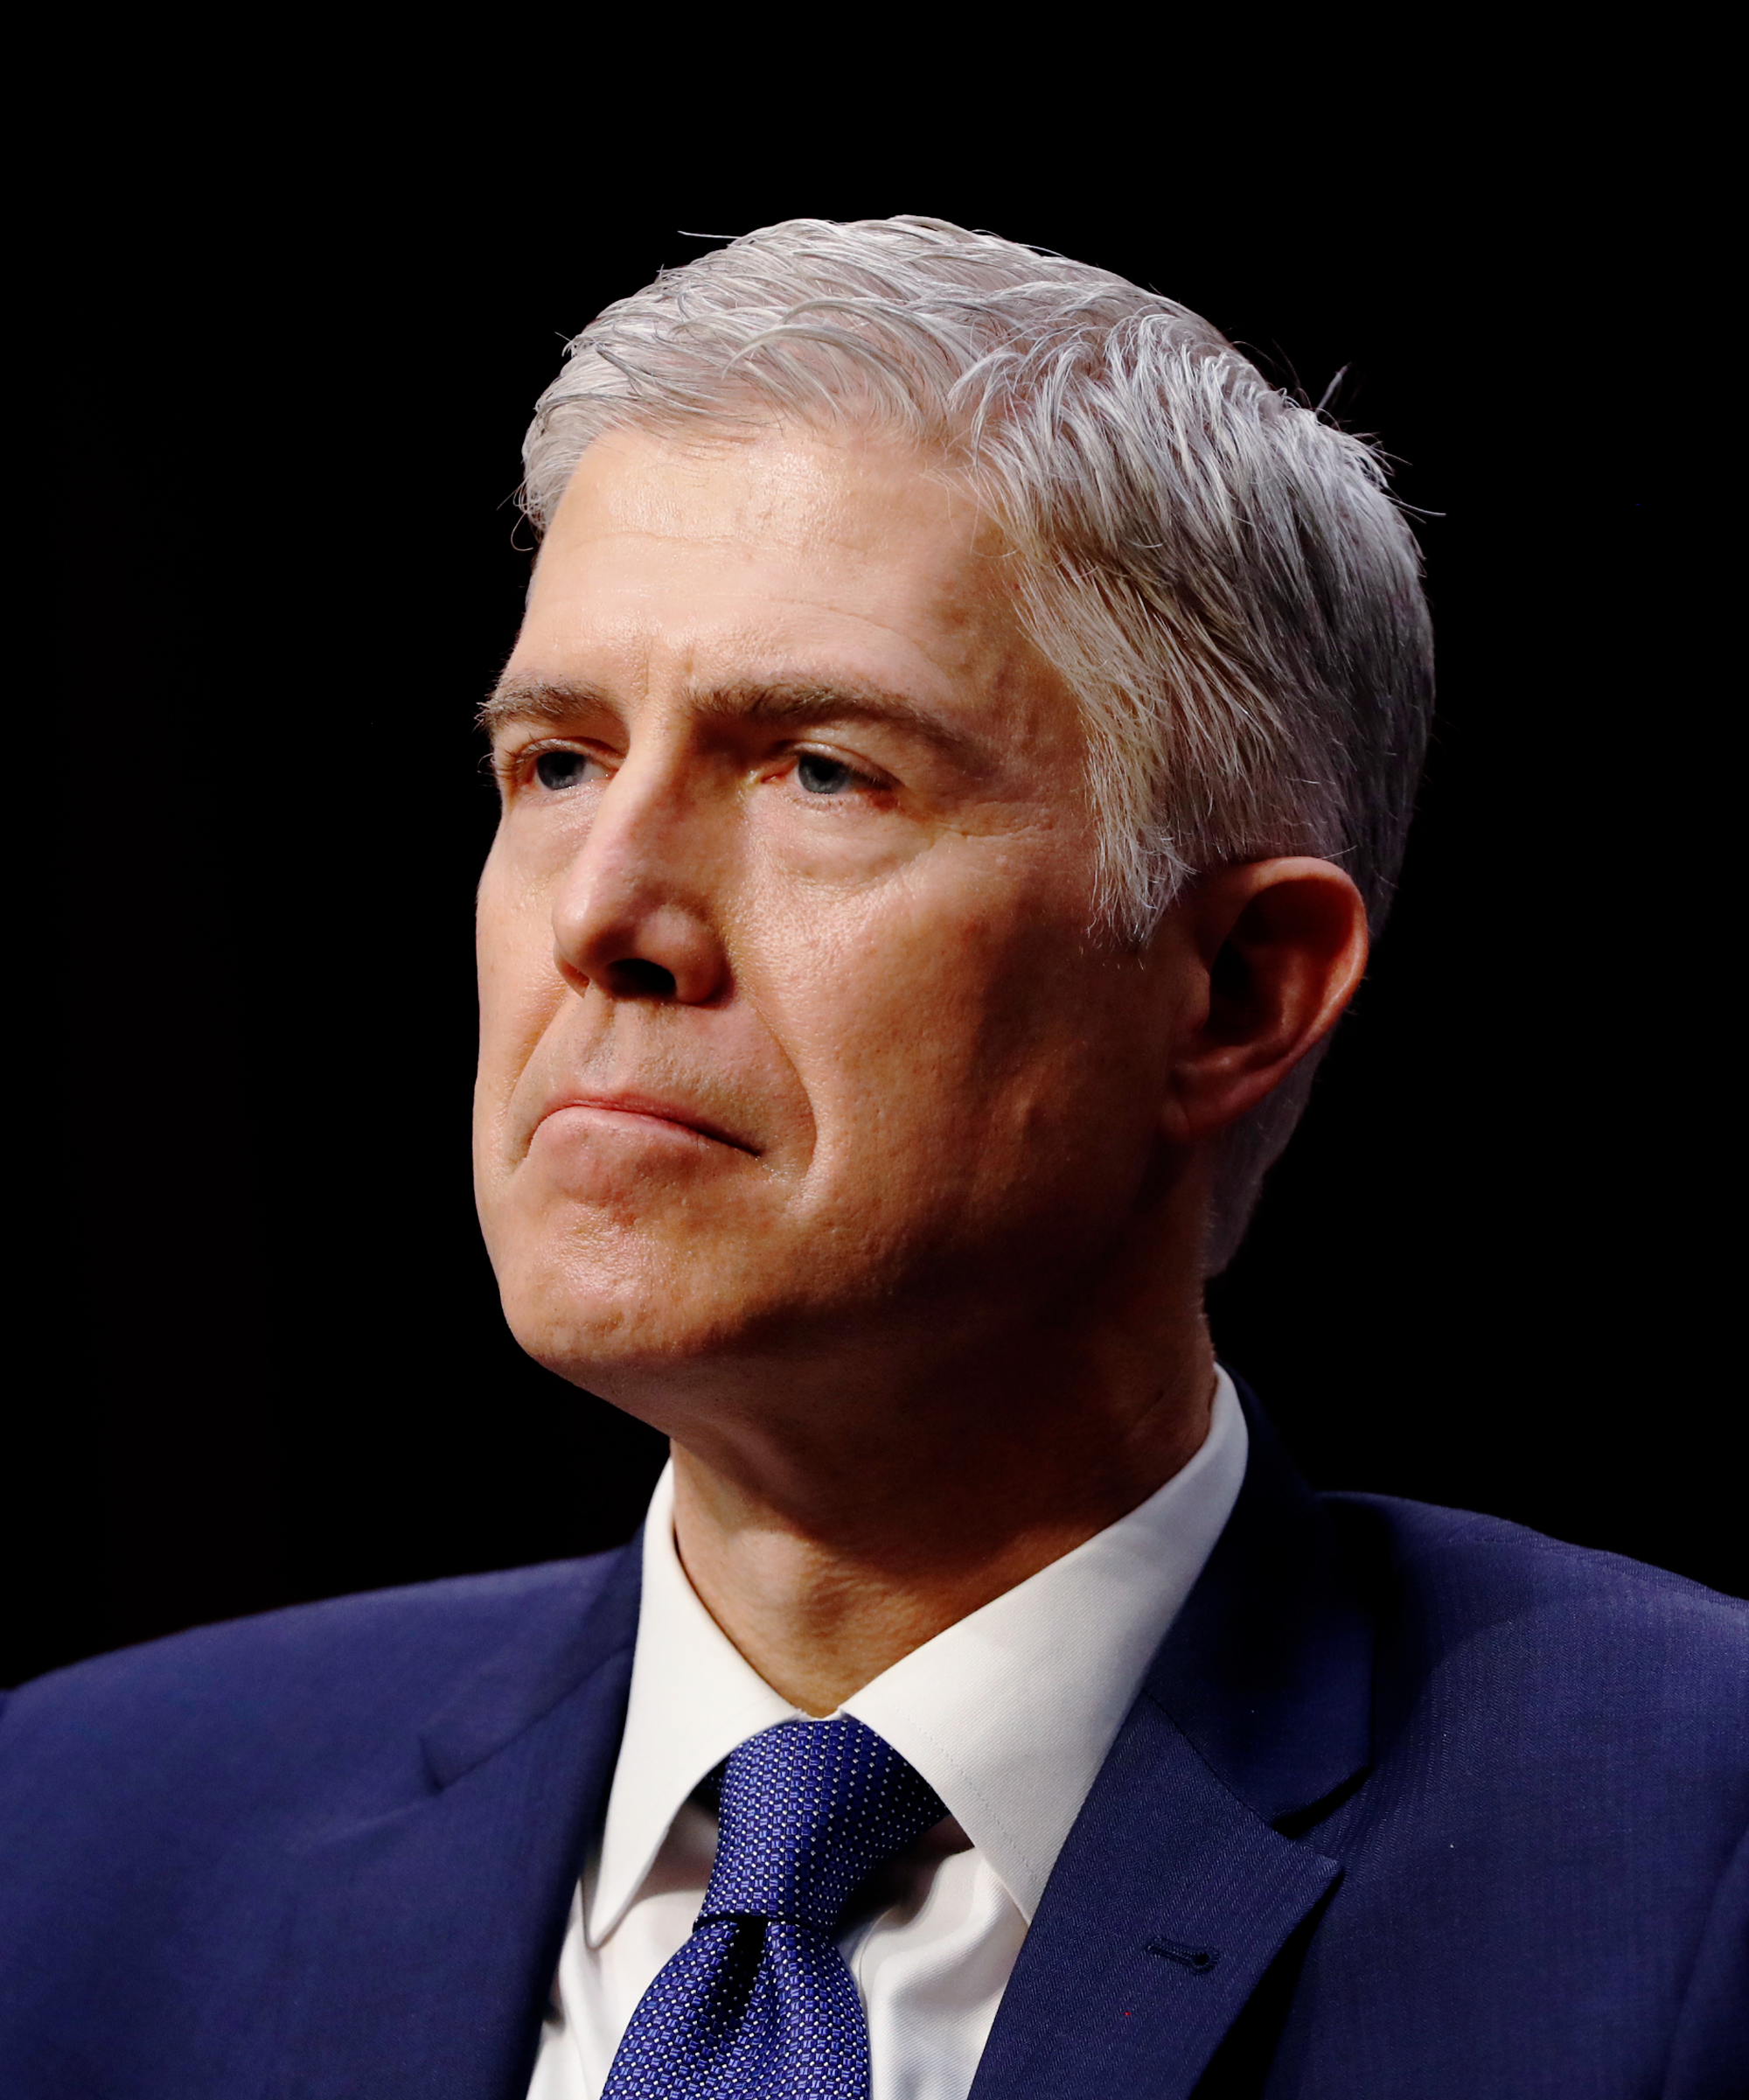 U.S. Senate Confirms Gorsuch as 113th Supreme Court Justice